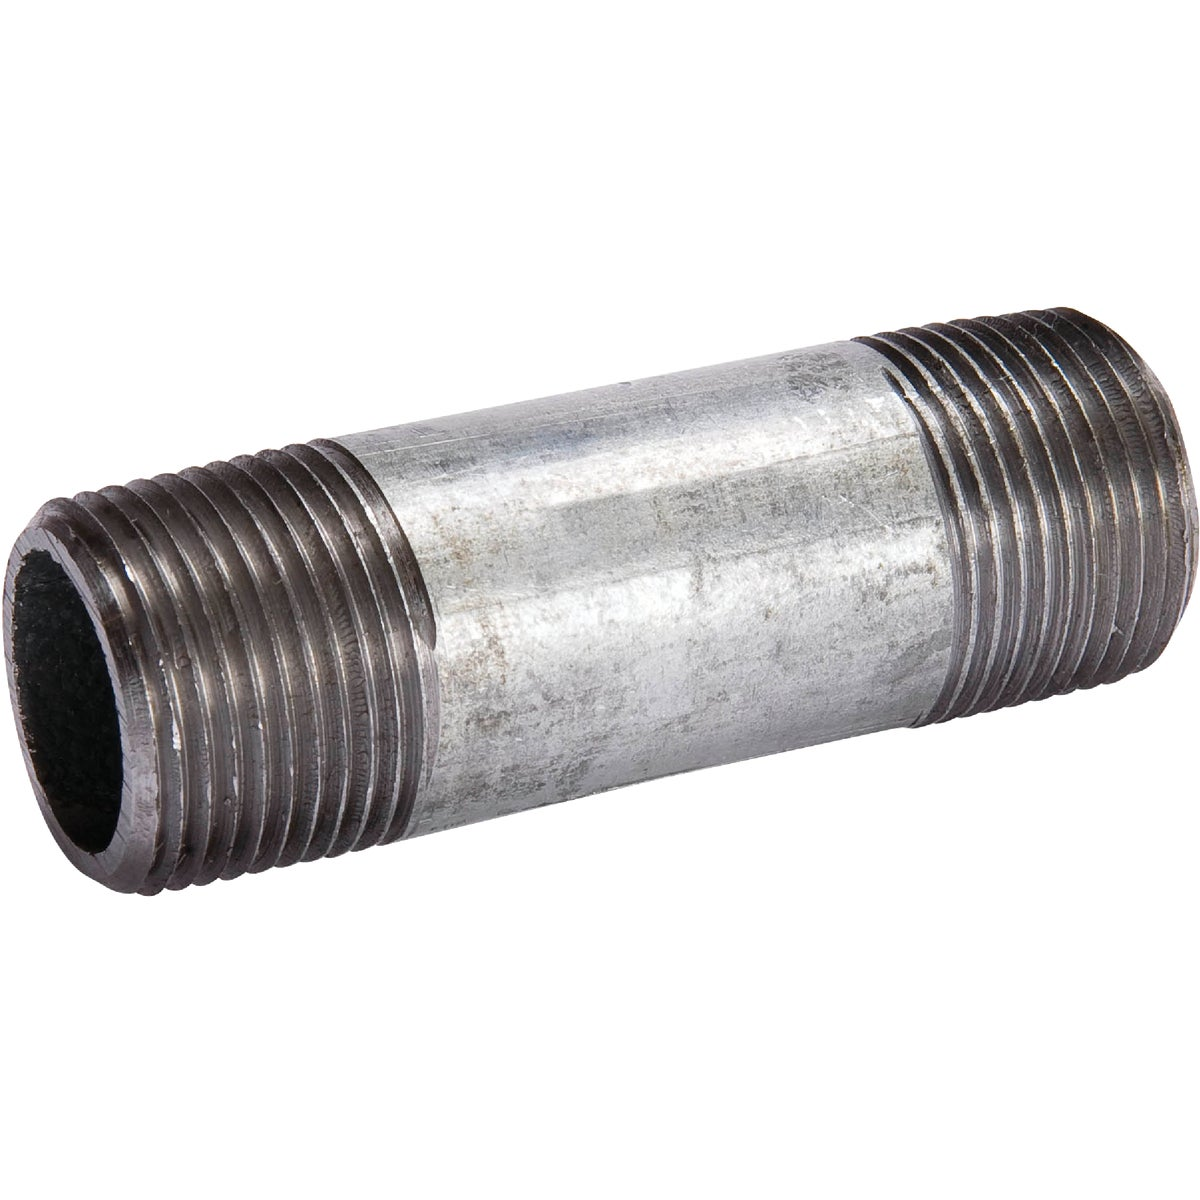 1/4X3-1/2 GALV NIPPLE - 10205 by Southland Pipe Nippl